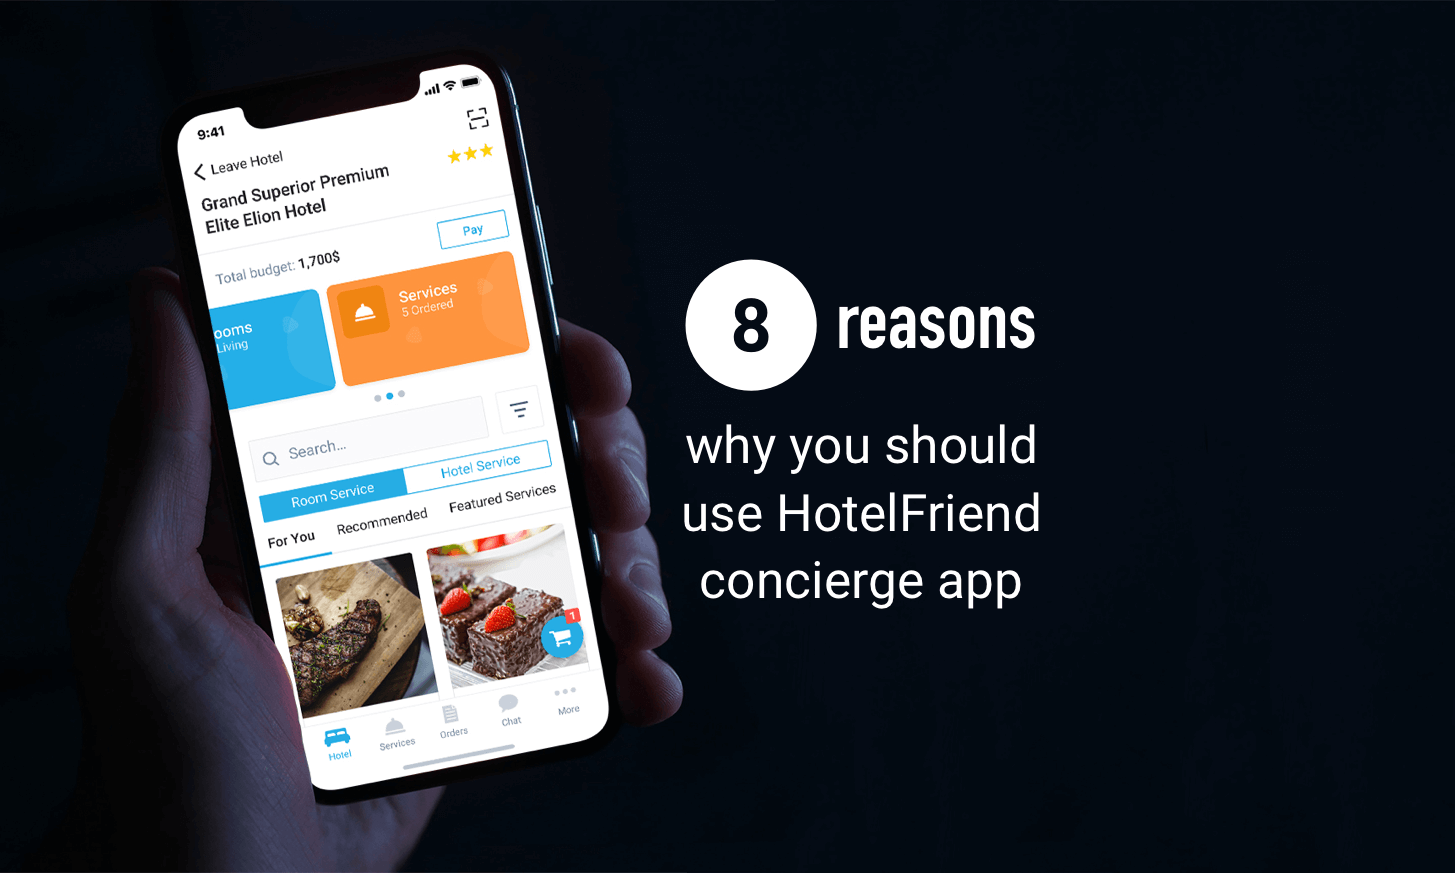 8 reasons why you should use HotelFriend Hotel Concierge Guest App